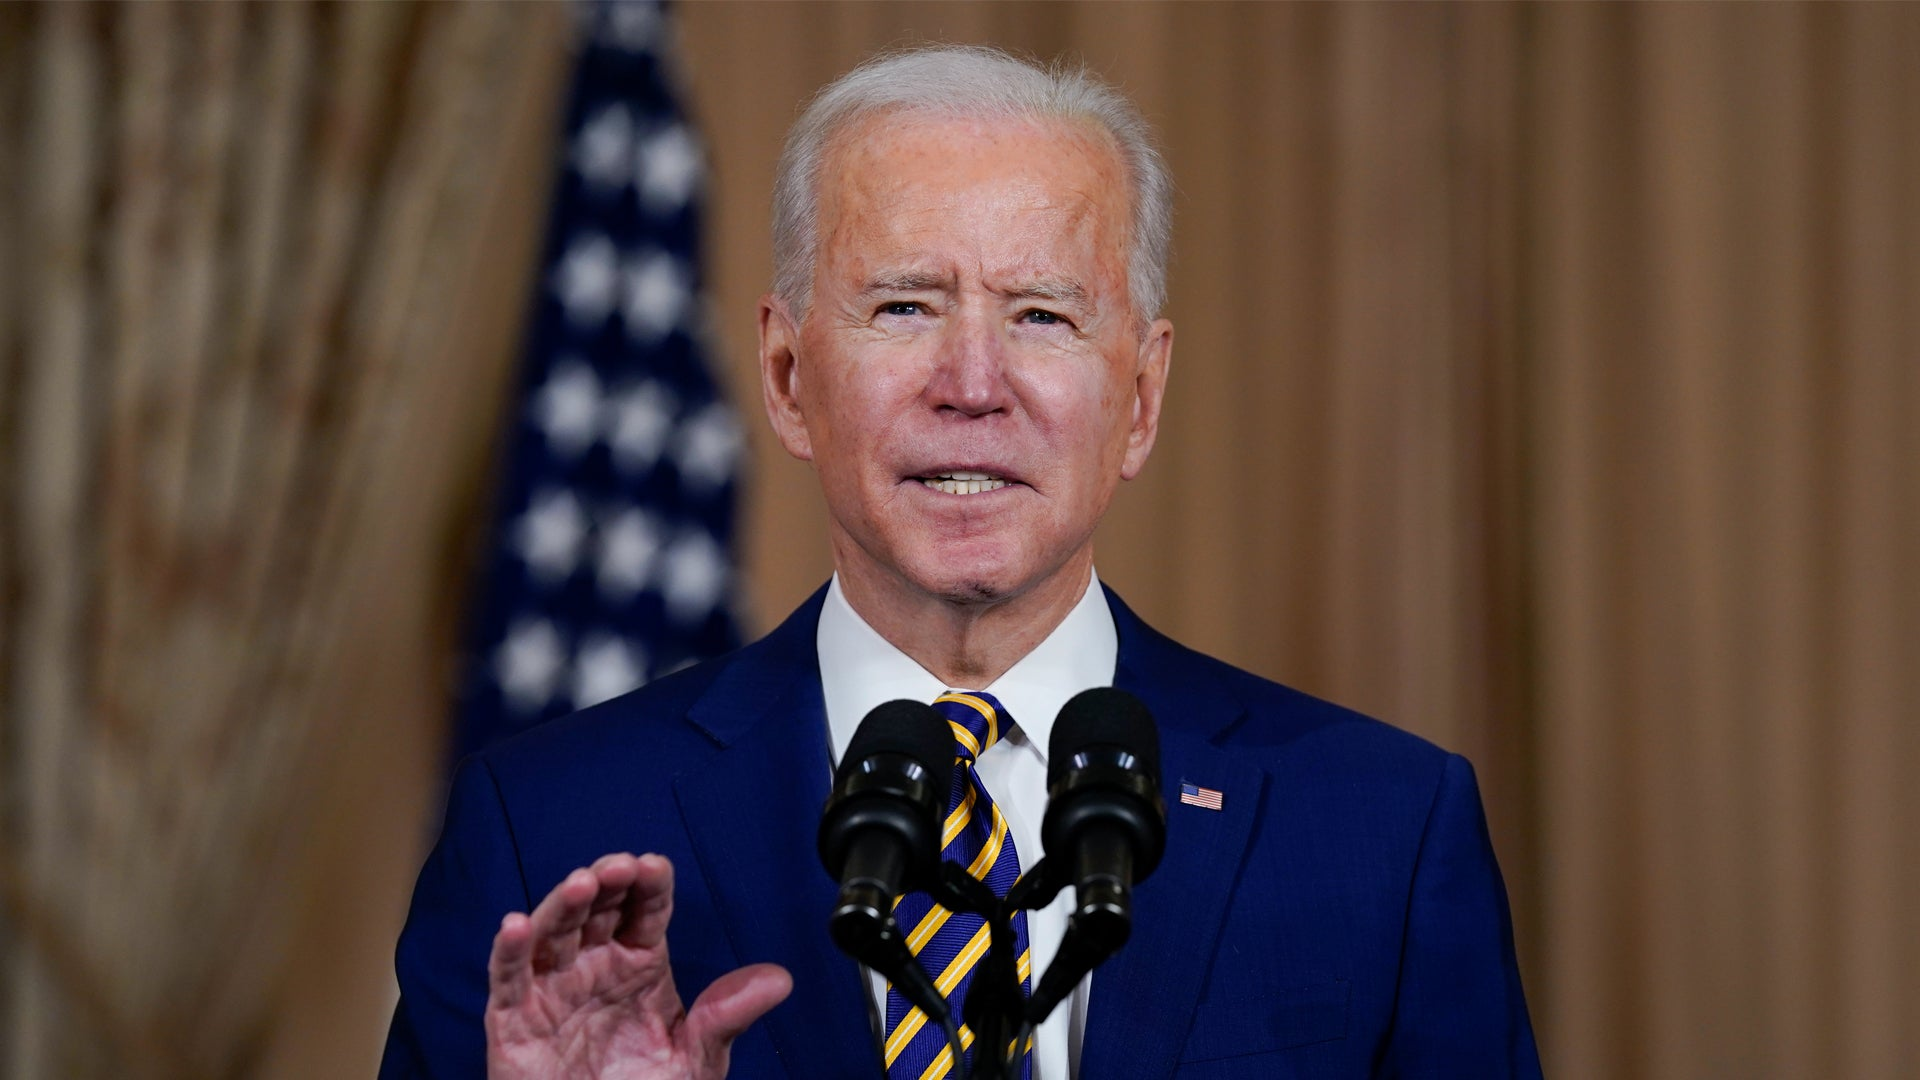 Biden says US will stop supporting 'offensive operations' in Yemen